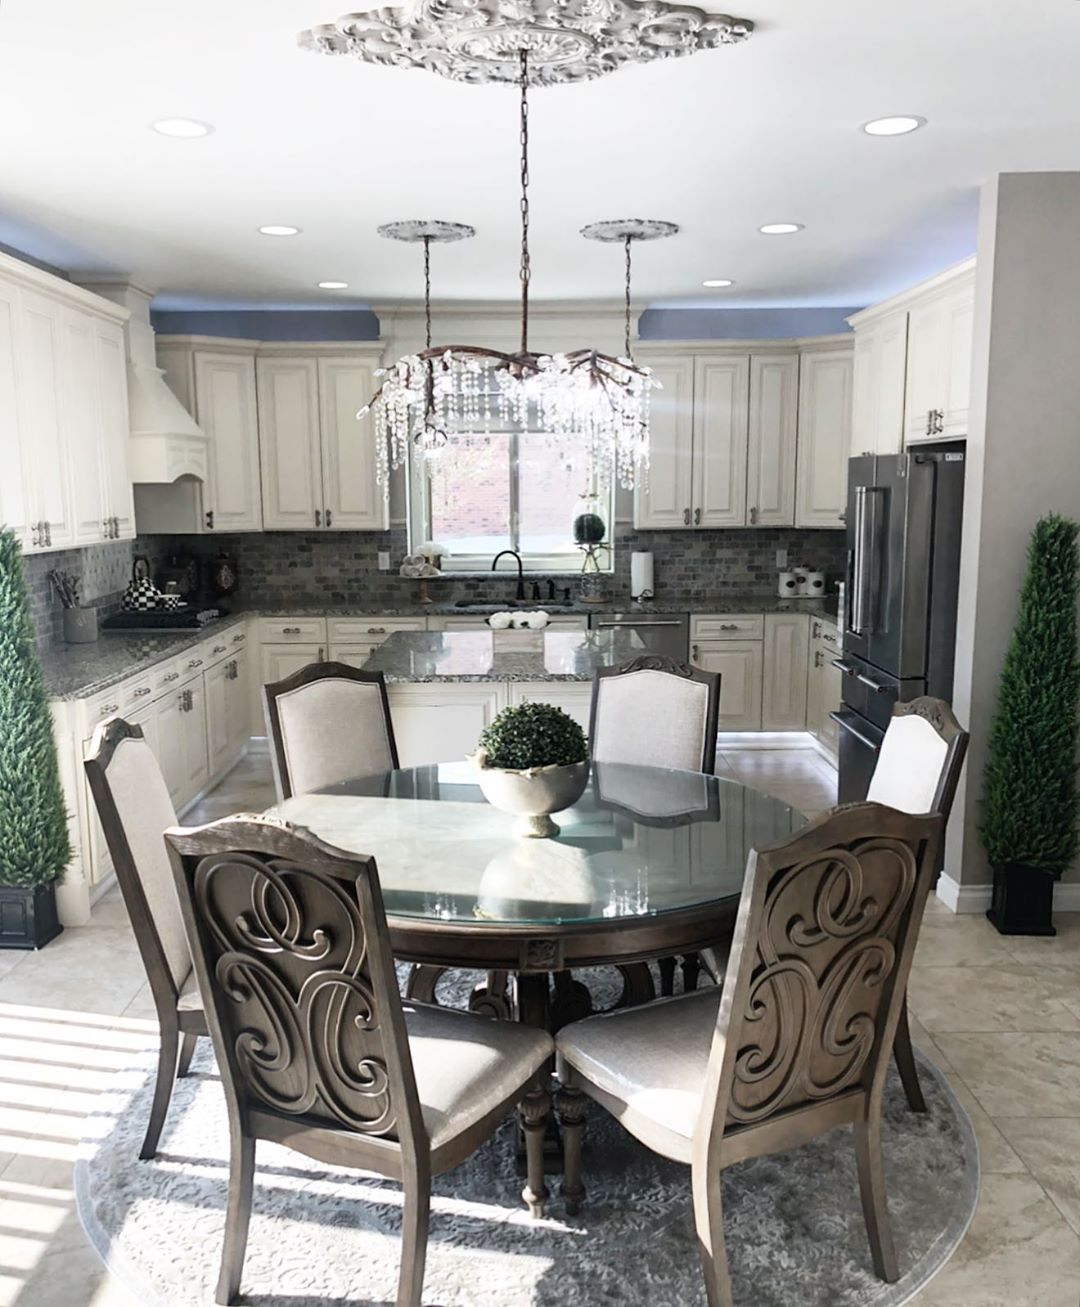 I used to look through my feed and question my style. Should I add more color? S...  #crystalchandelier #diningroomlighting #diningtabledecor #diningtables #happyathome #homedecor #homegoods #homegoodsfinds #homeorganizing #interiordesign #kitchendecor #kitchengoals #kitcheninspiration #kitchenislands #kitchennook #kitchenremodel #kitchensofinstagram #livingroomstyling #luxuryhomes #openfloorplan #organizedhome #whitecabinets #zgalleriemoment